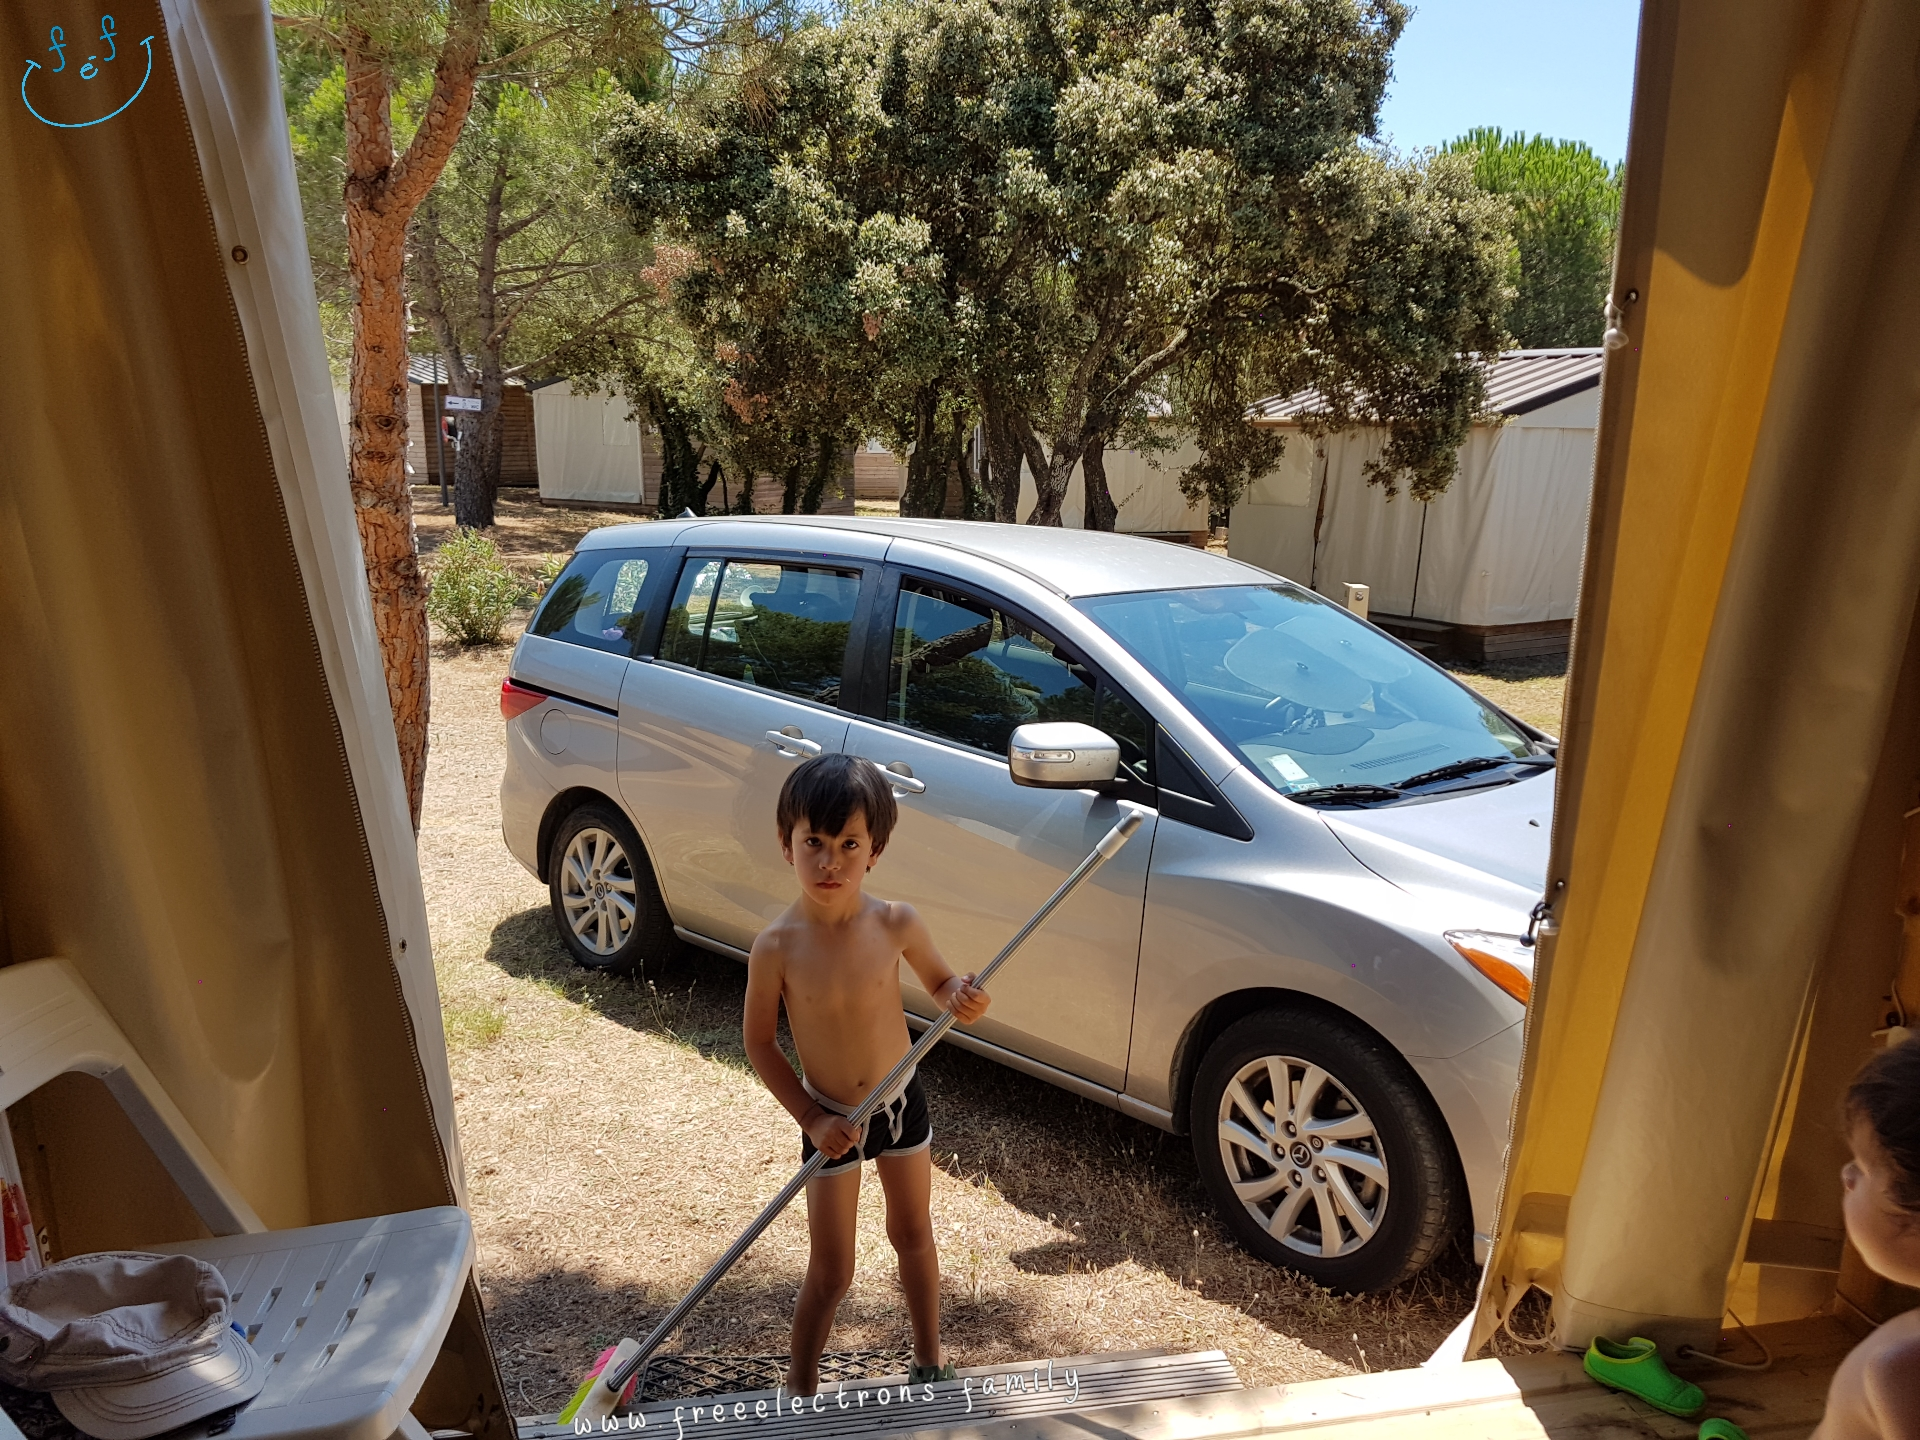 A young boy, shirtless, cleaning up with a broom in front of  camping cabin.  A younger boy looks at him from a patio.  #FreeElectrons.Family - camping road trip Europe, Agde France.